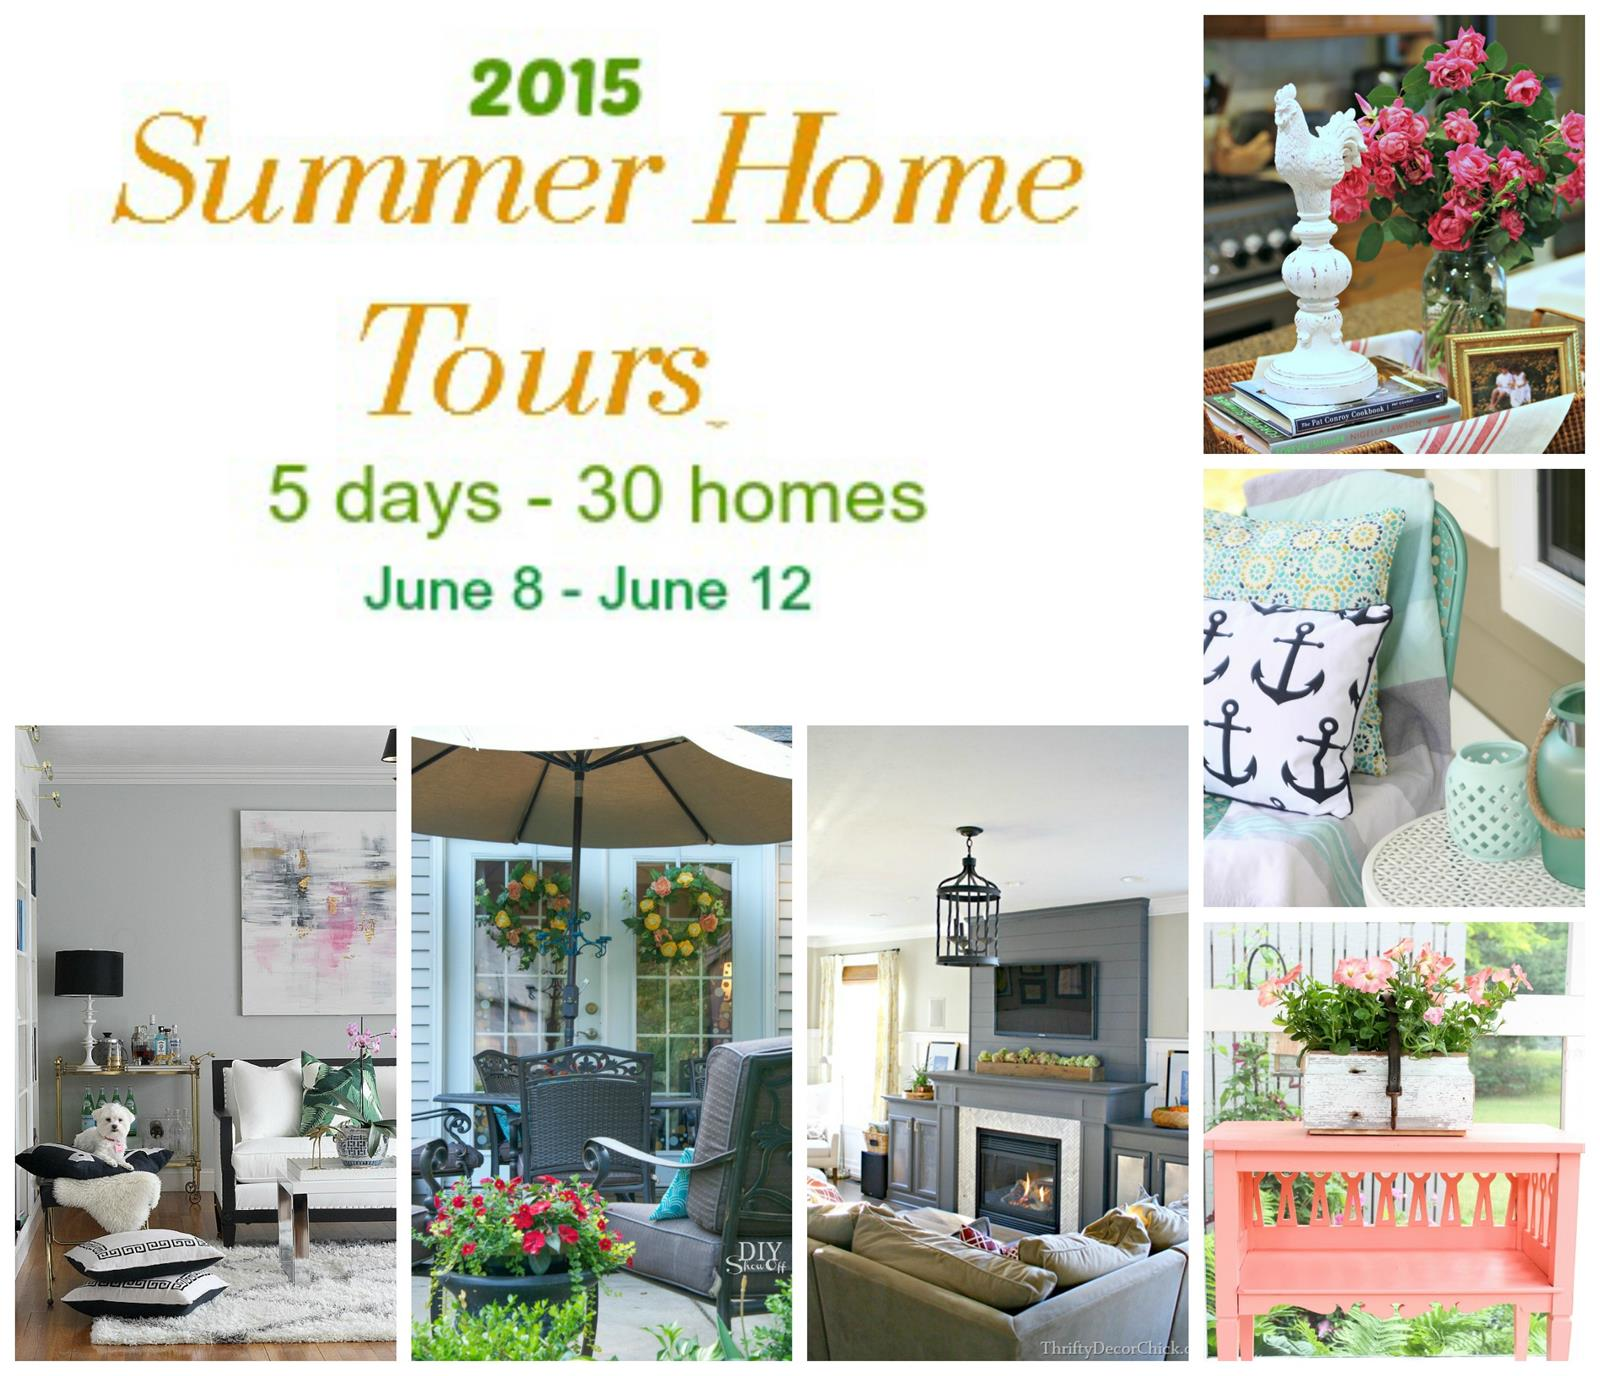 Summer Home Tours Blog Hop @diyshowoff